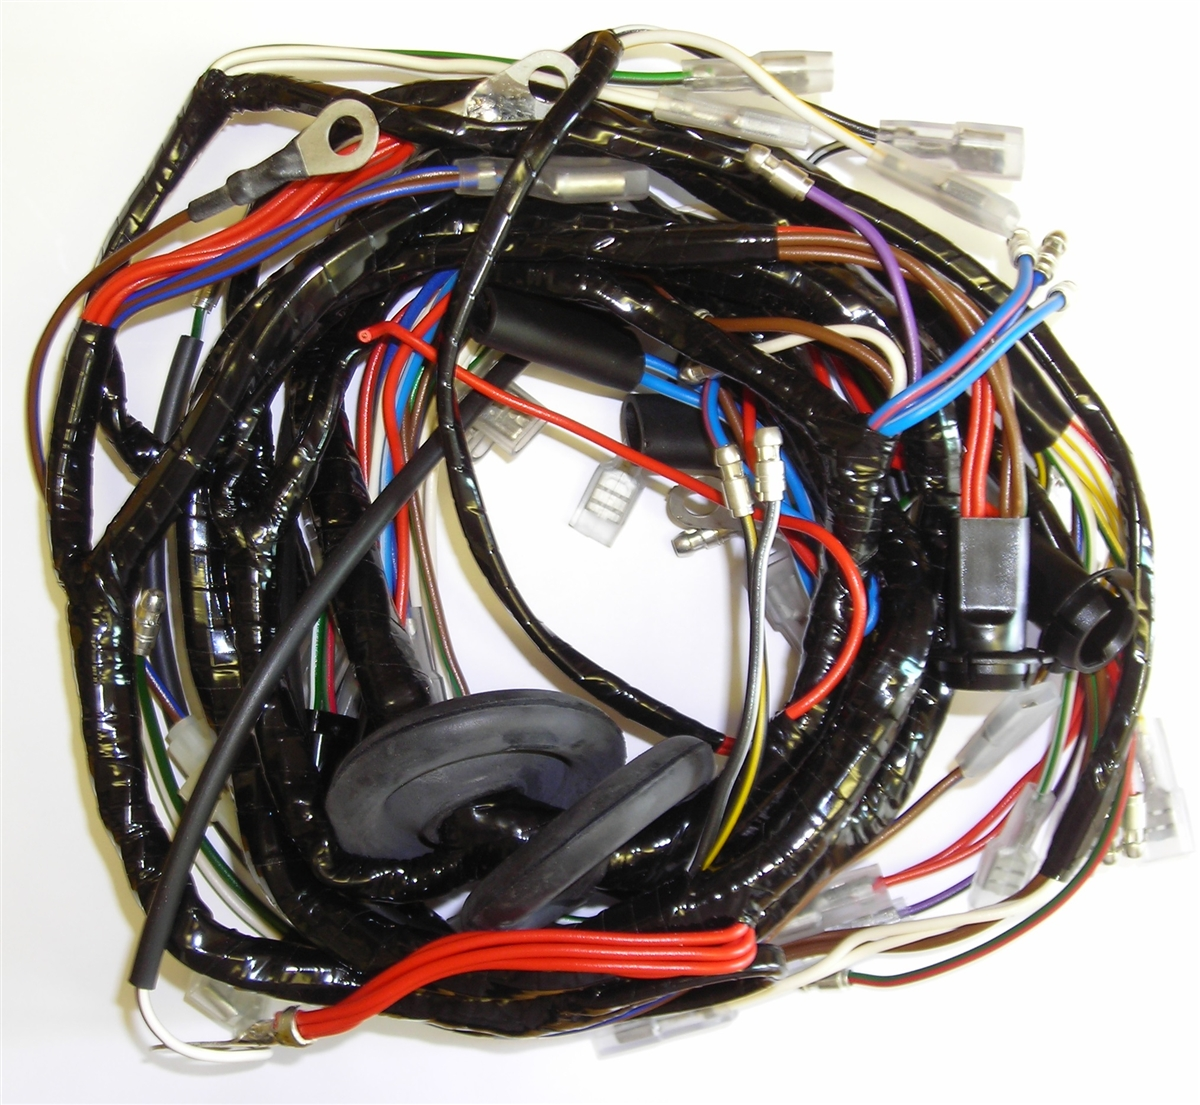 MC71PP-2 Wiring Harness Motorcycle on